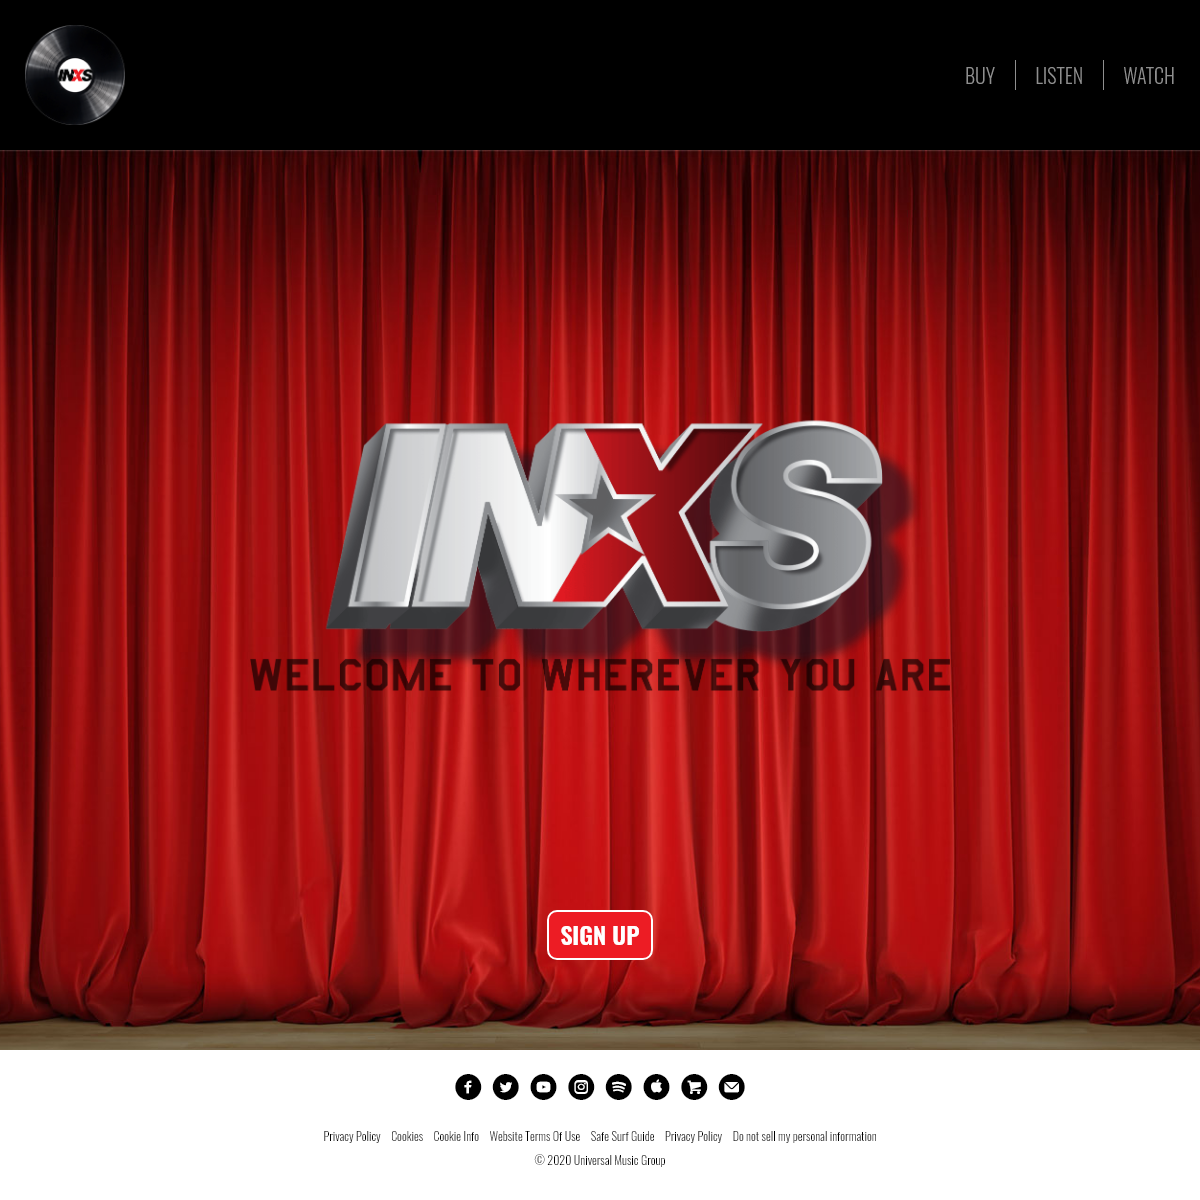 INXS - The Official website of INXS